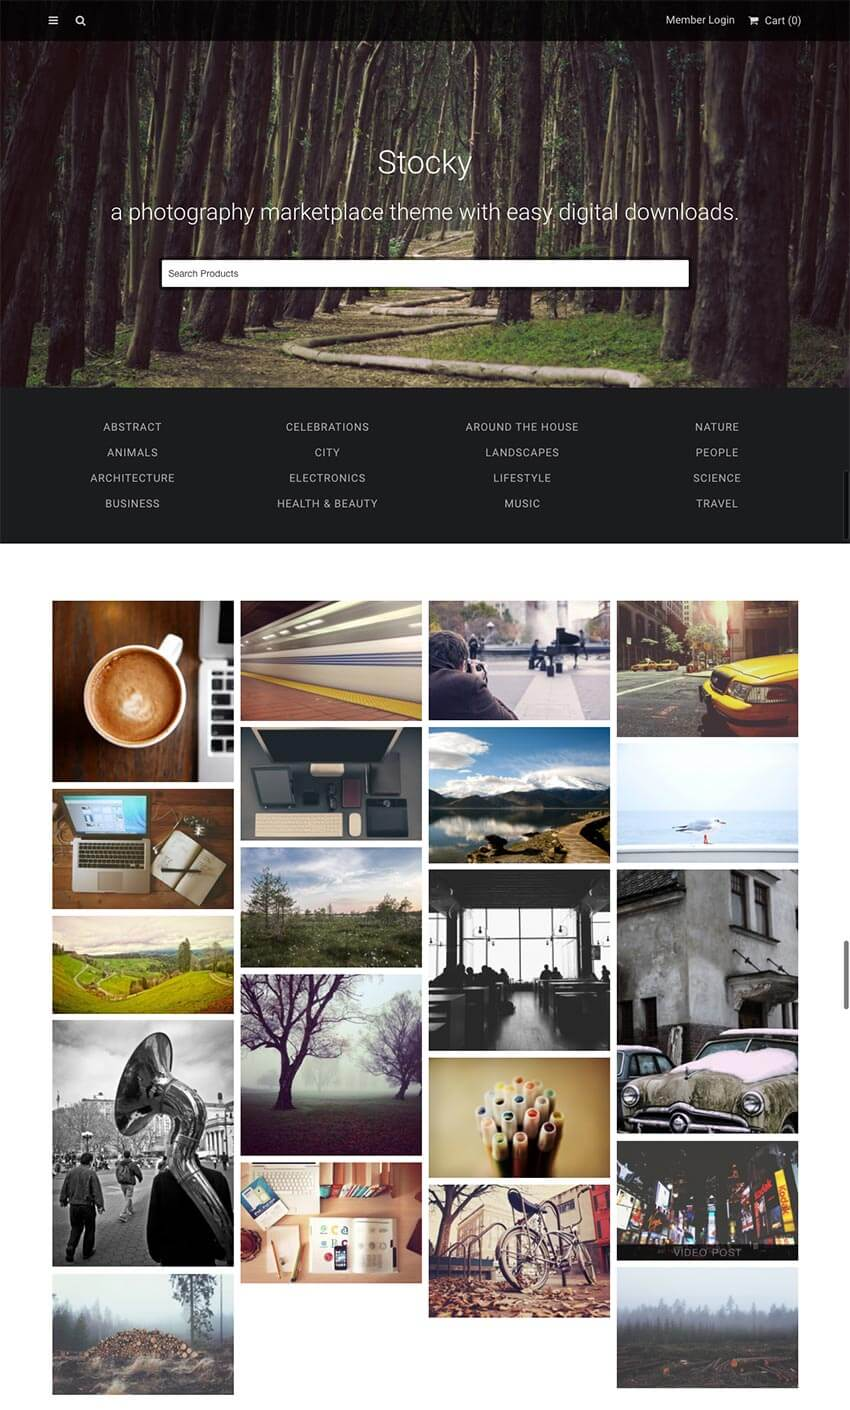 Stocky - A Fotografía de archivo WordPress Marketplace Theme